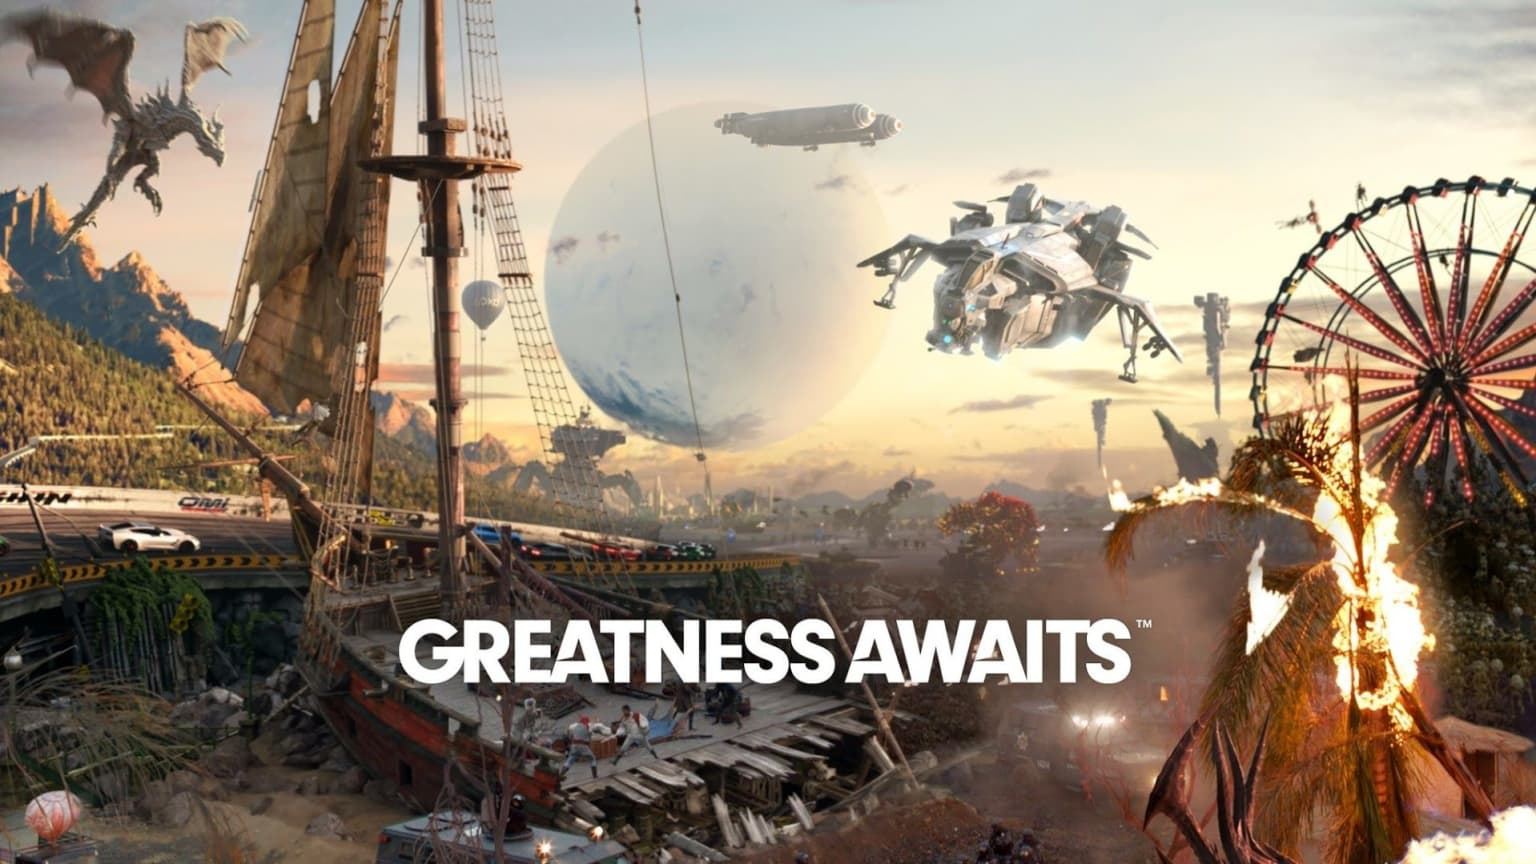 #GreatnessAwaits / PS4 Global Launch